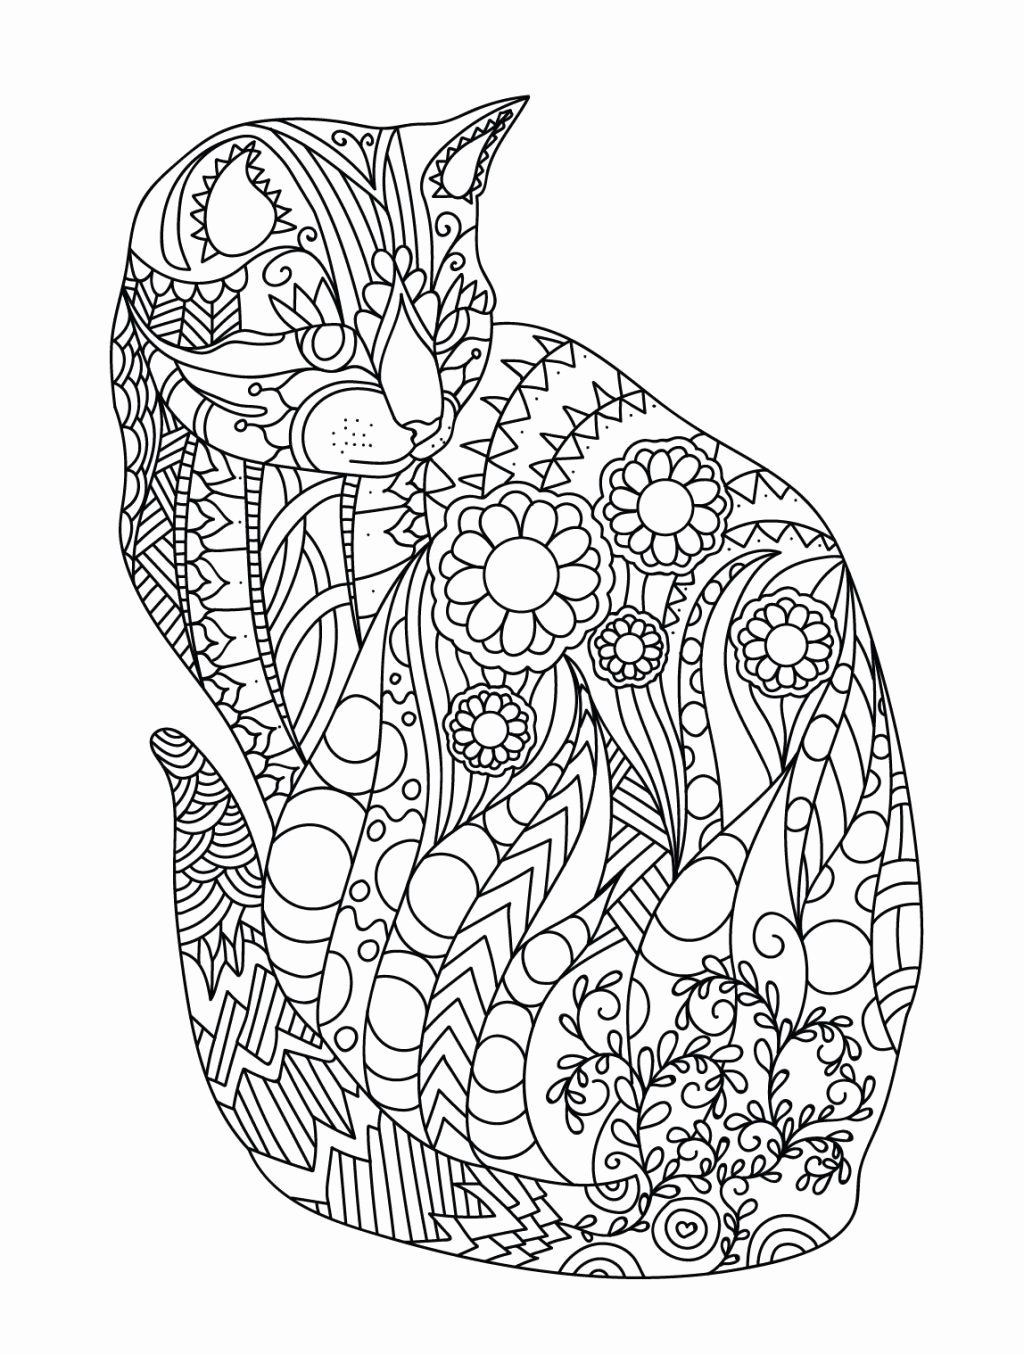 Valentines Day Cats In Love Coloring Pages Printable | 1355x1024